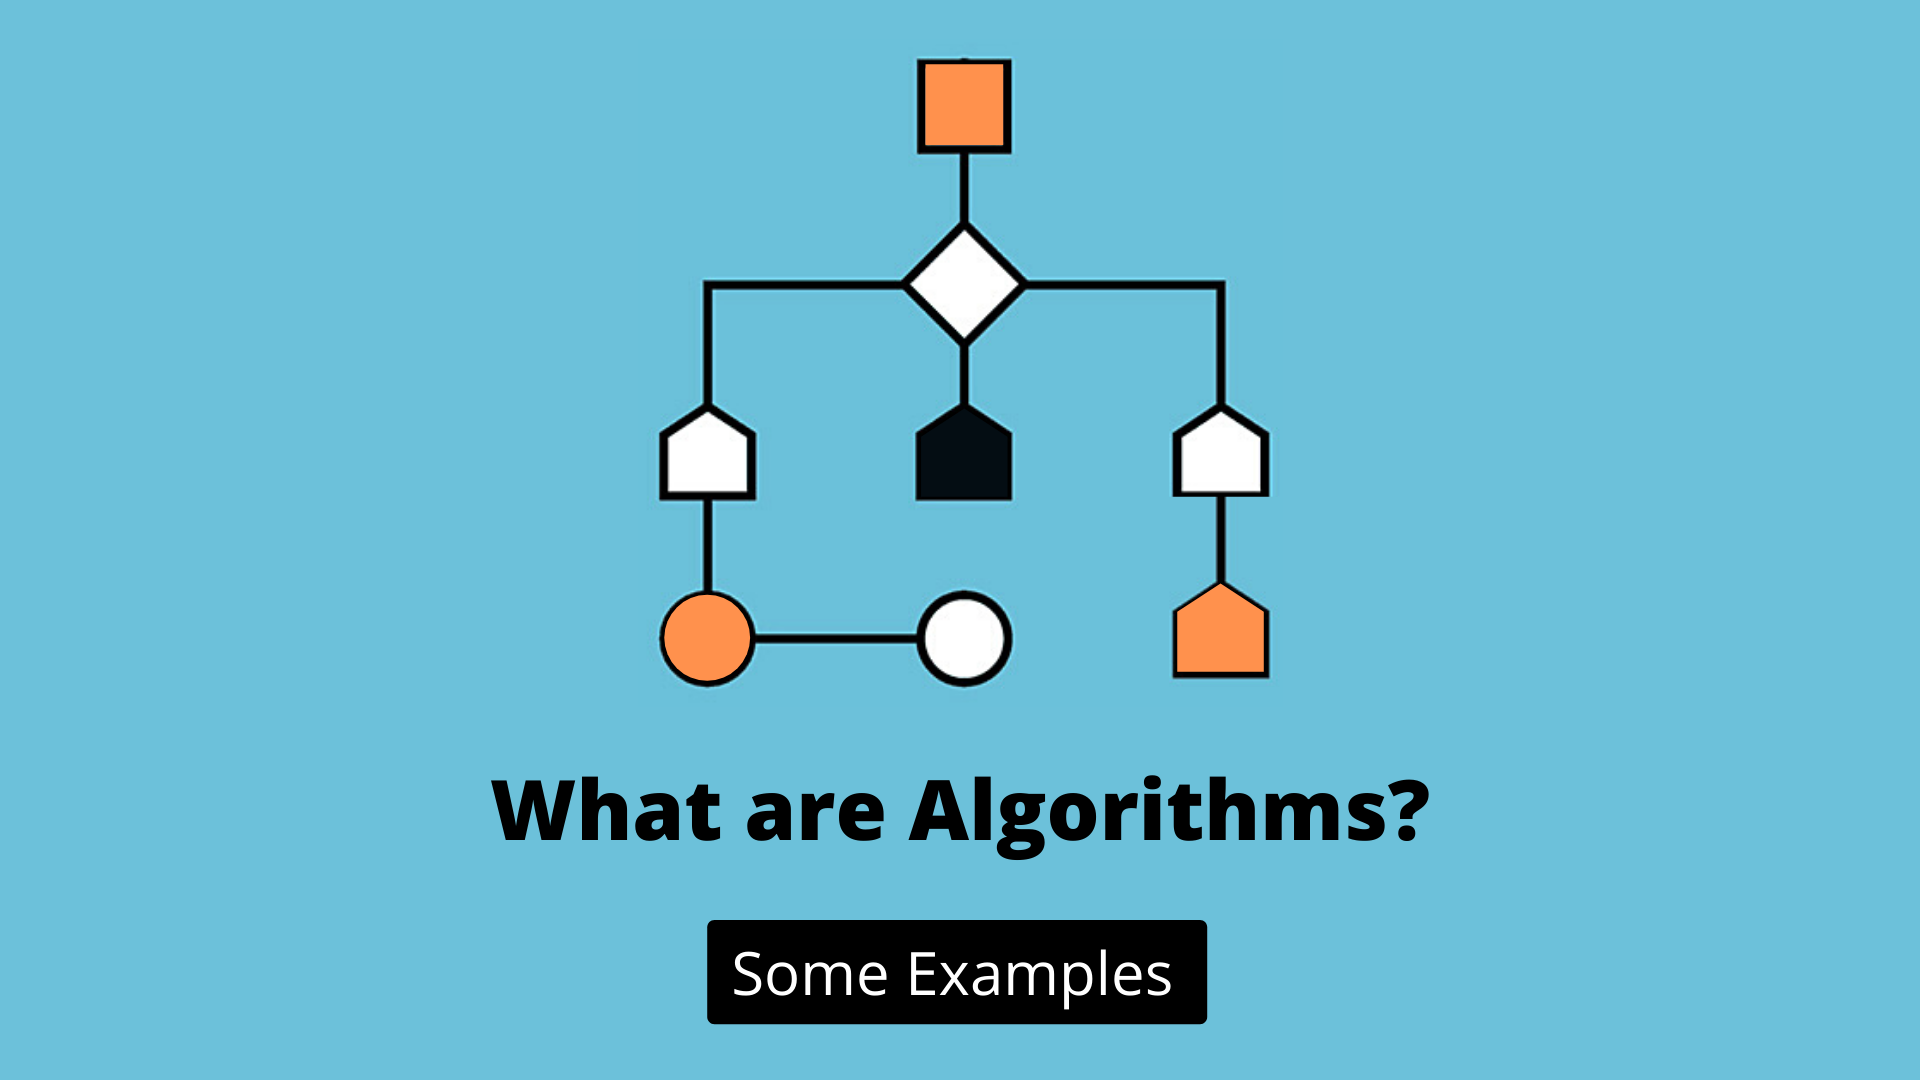 What are Algorithms?